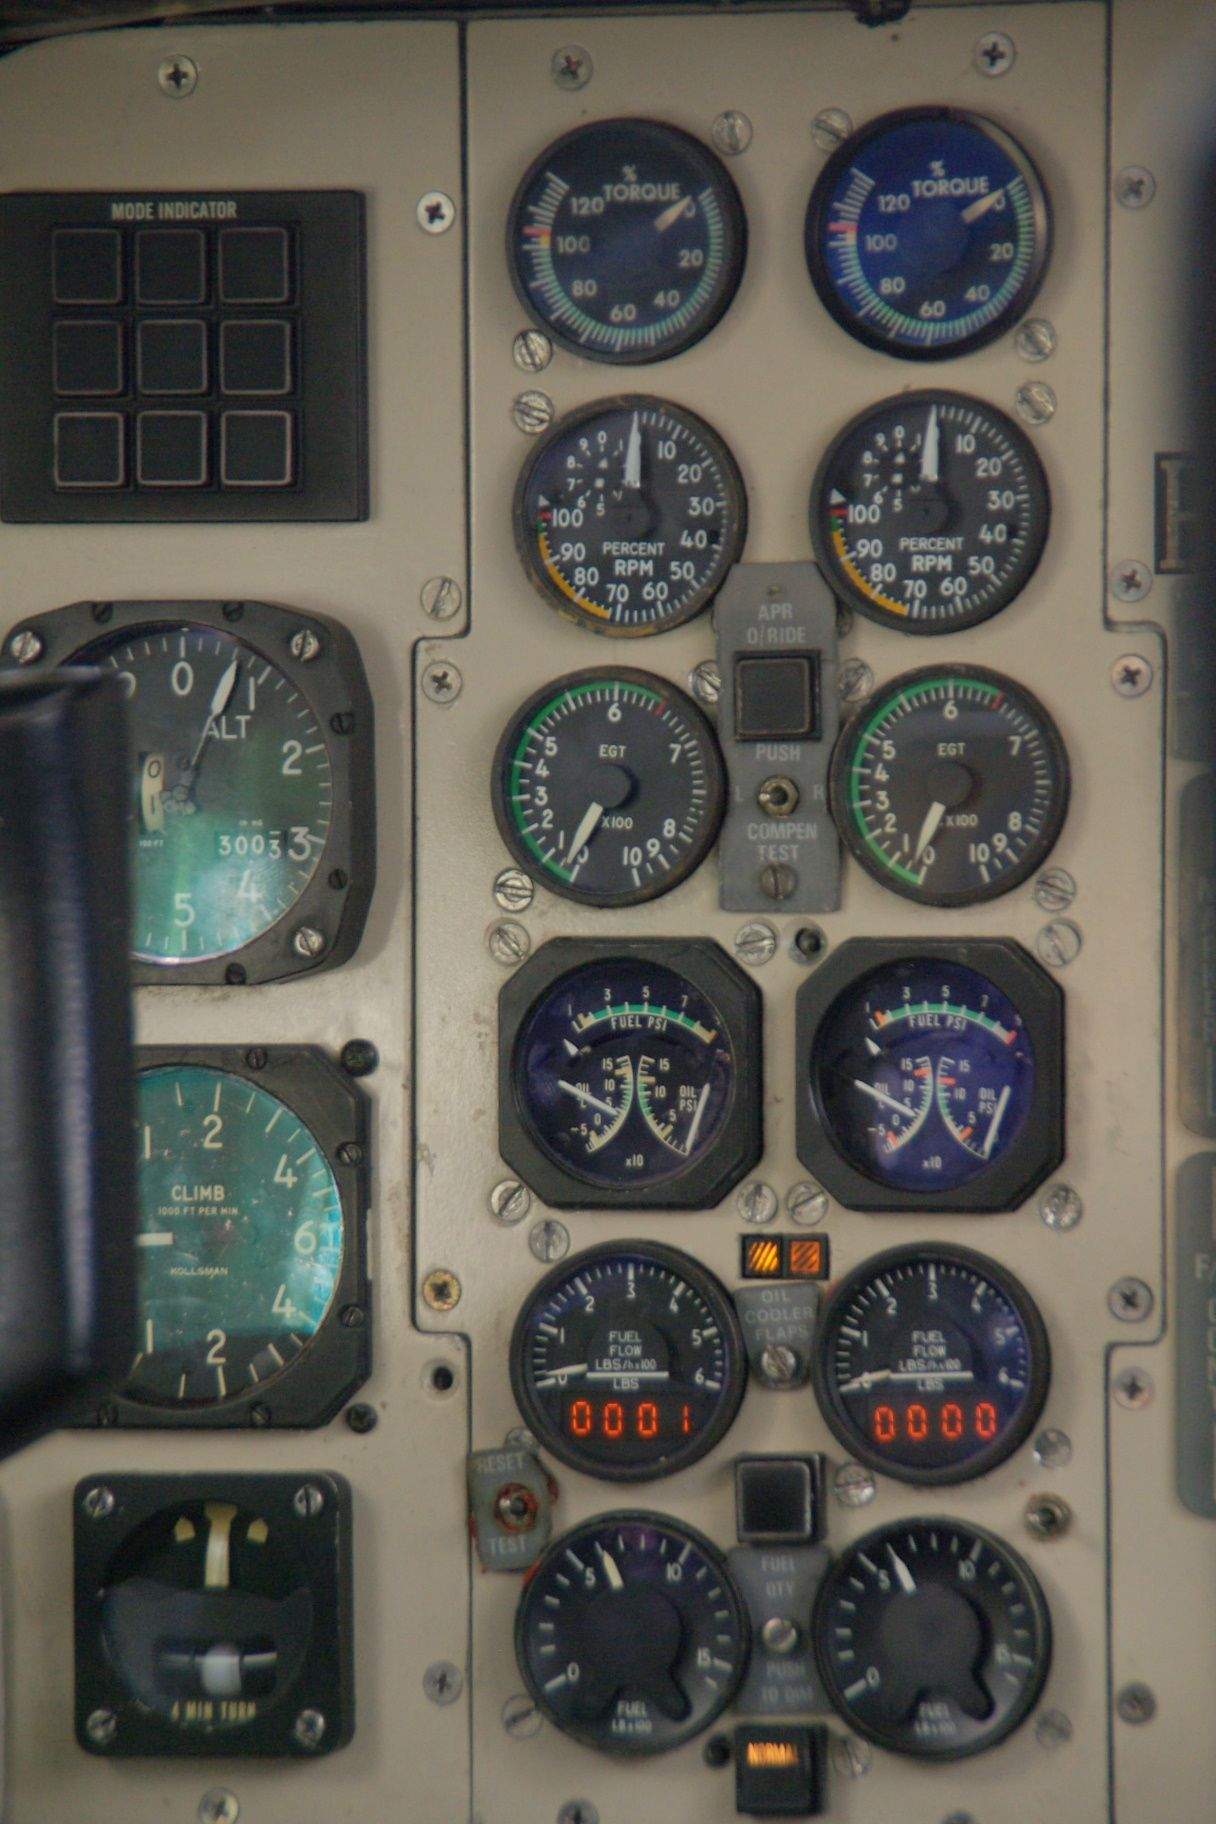 Pin by Browse The Ramp on Avionics | Airplane for sale